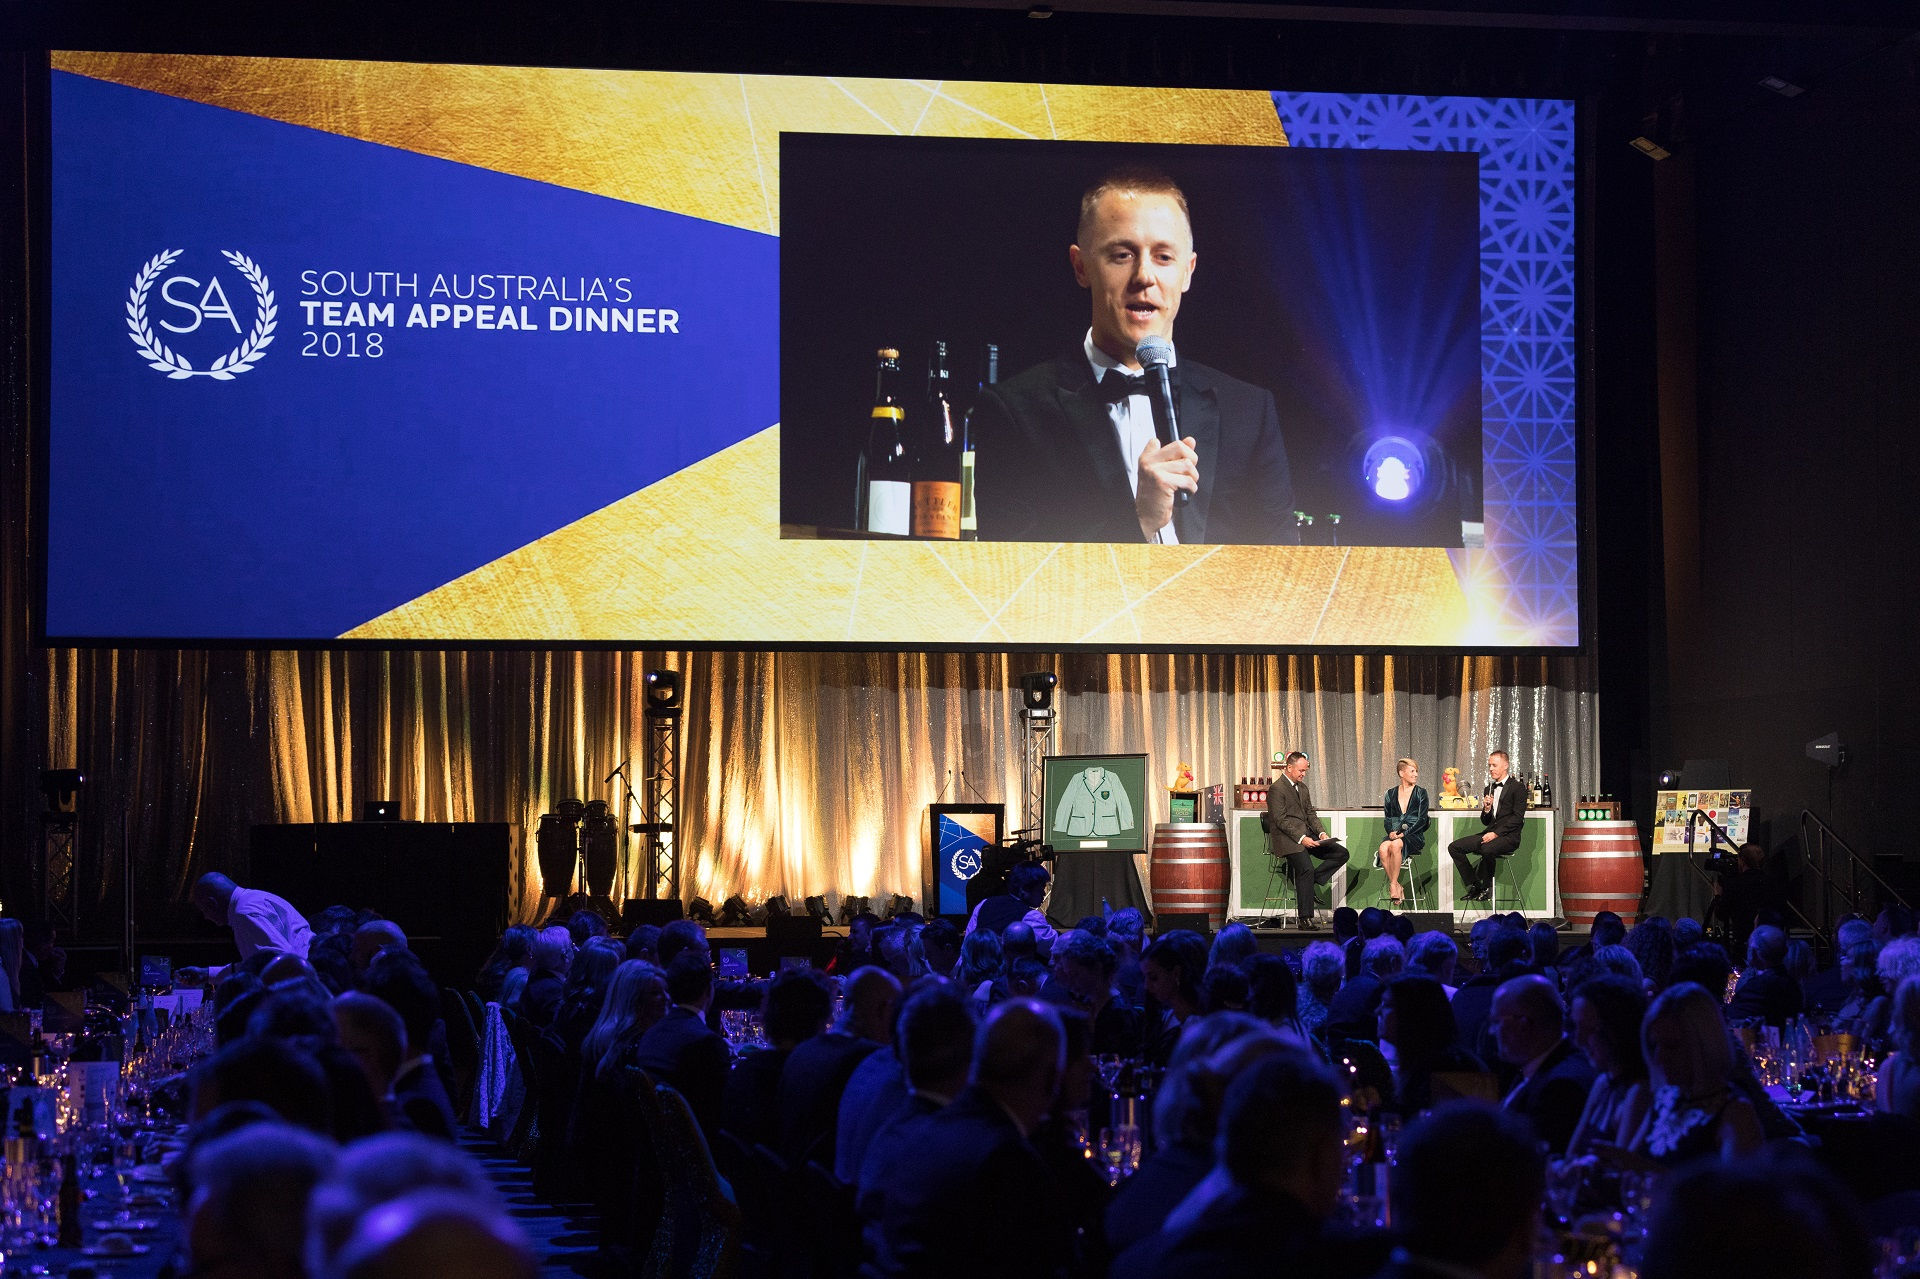 Lumino-Olympics-Team Appeal Dinner-Adelaide Convention Centre-04.jpg